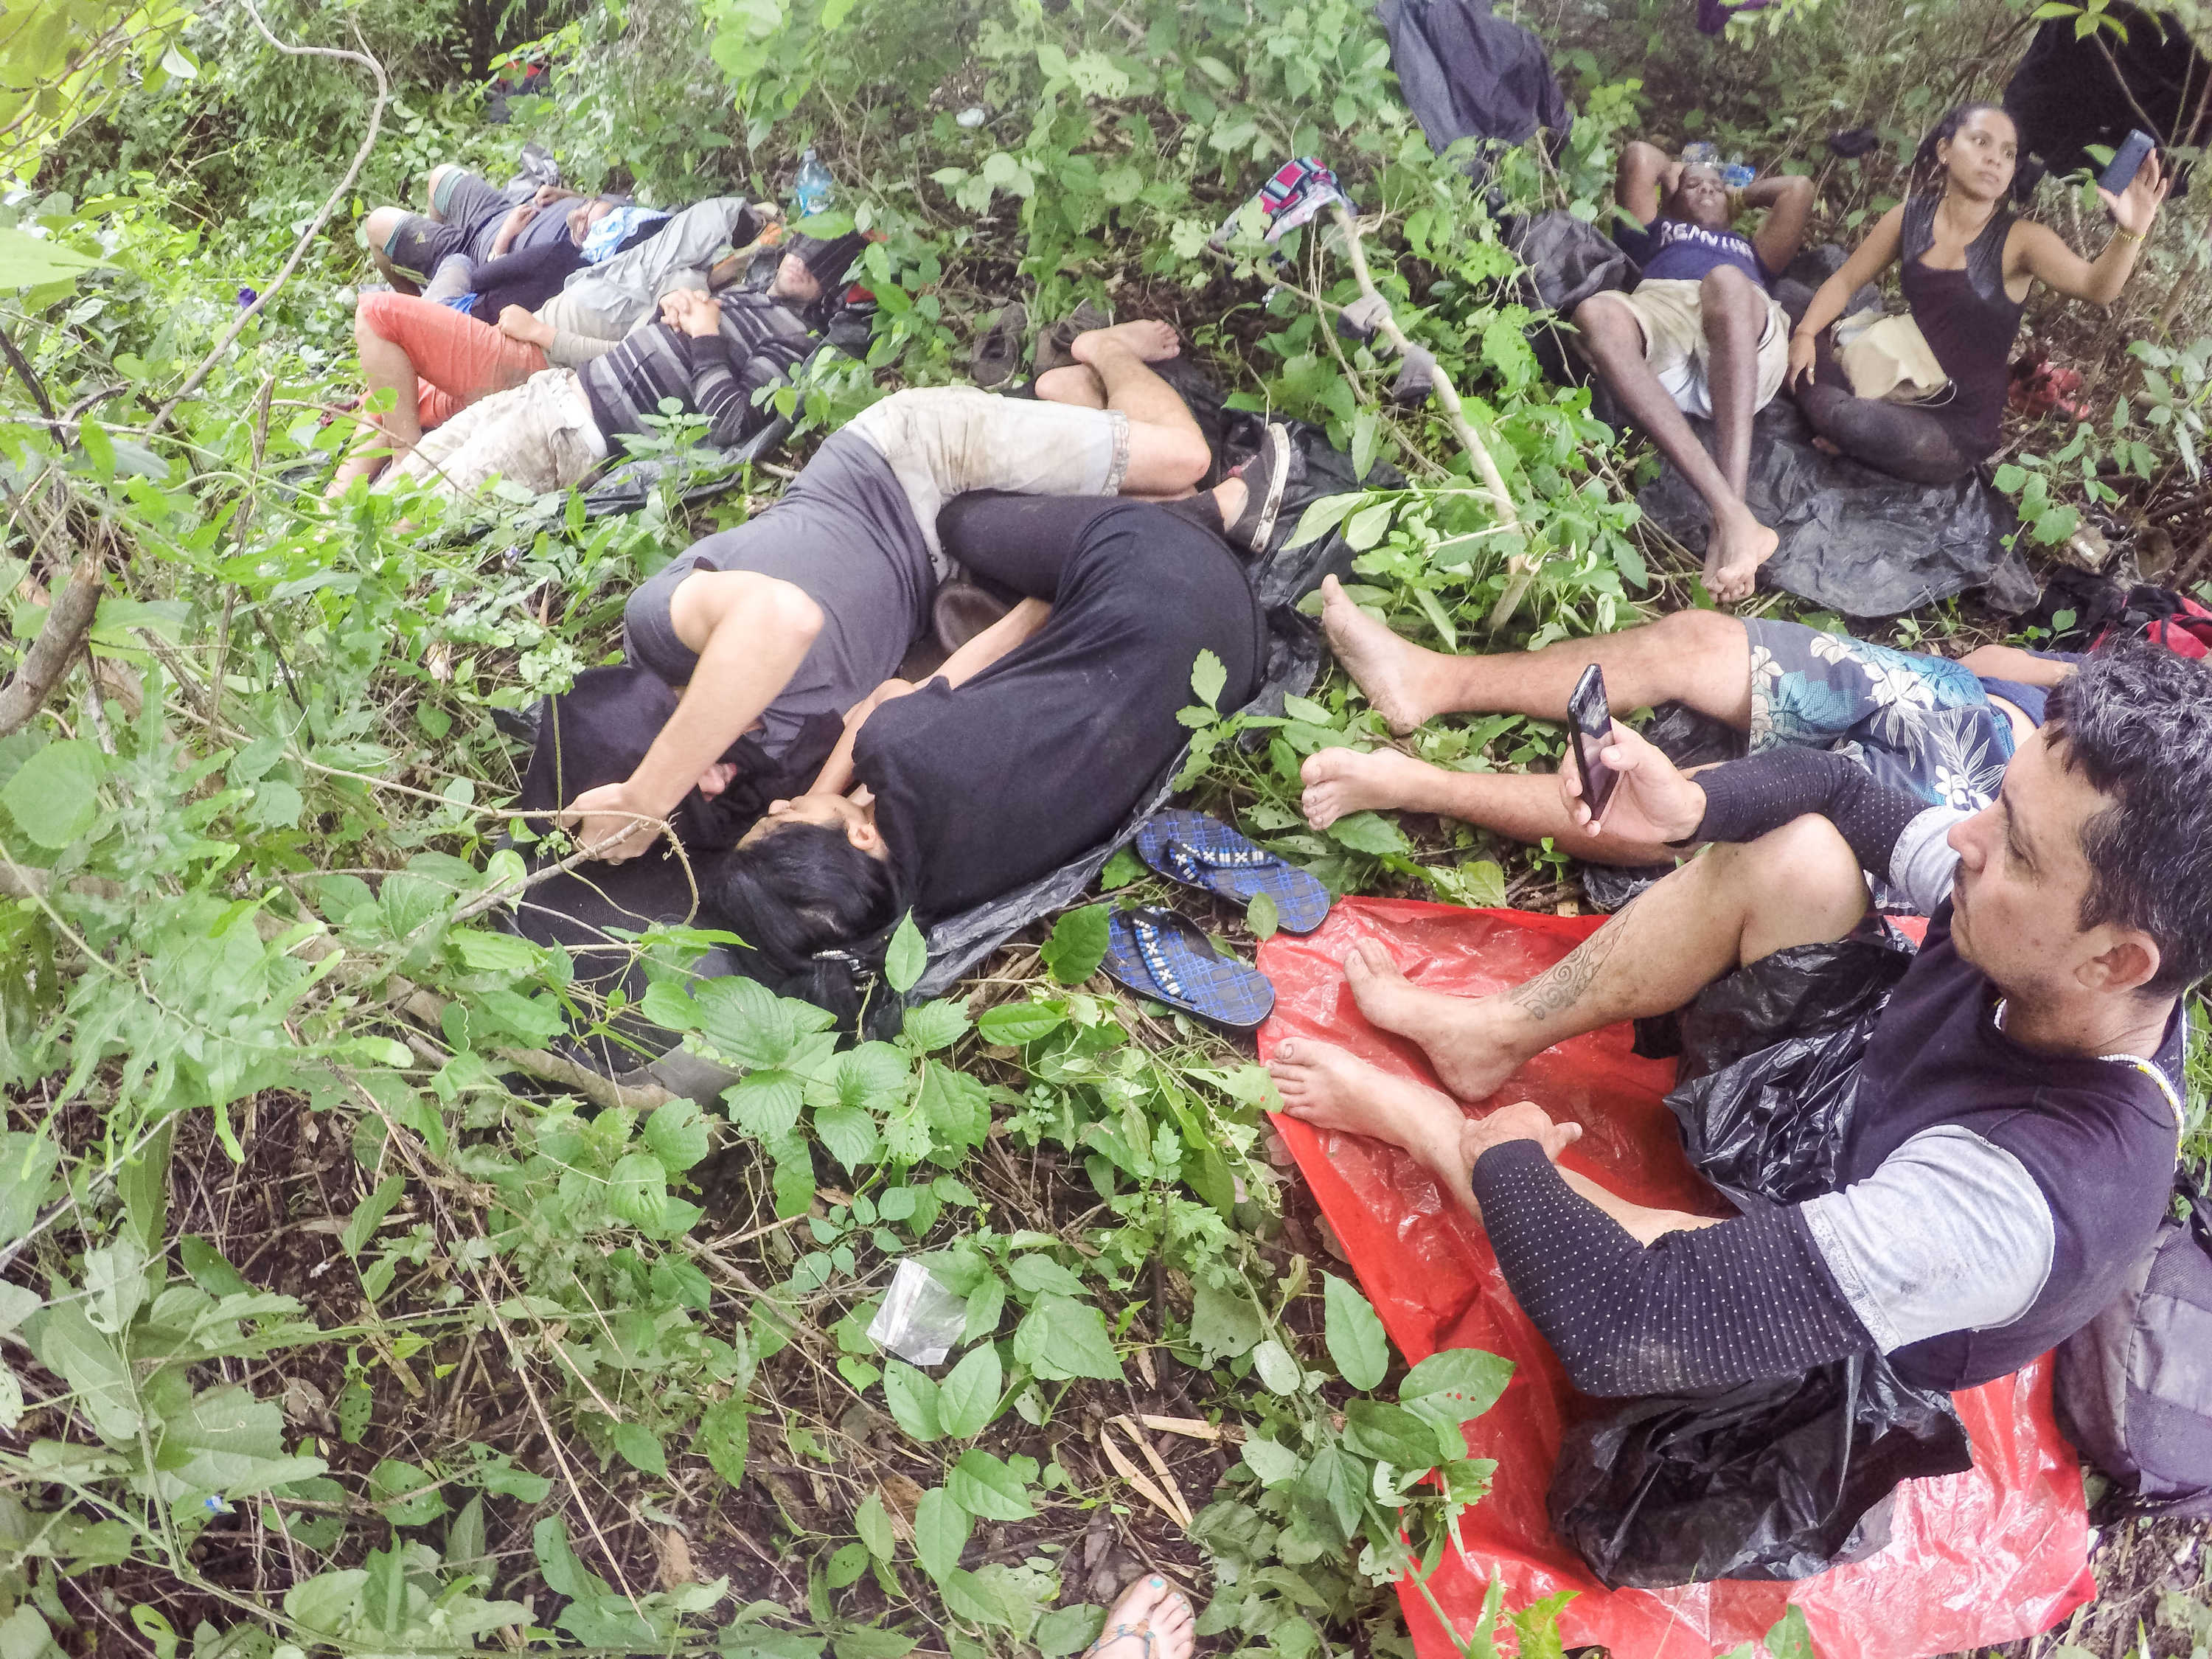 June 24, 2016 - Migrants spend most of their time in the Nicaraguan forest waiting for the signal to move on. Their coyotes put a hold on their journey because the Nicaraguan military has reinforced patrols on migrants.